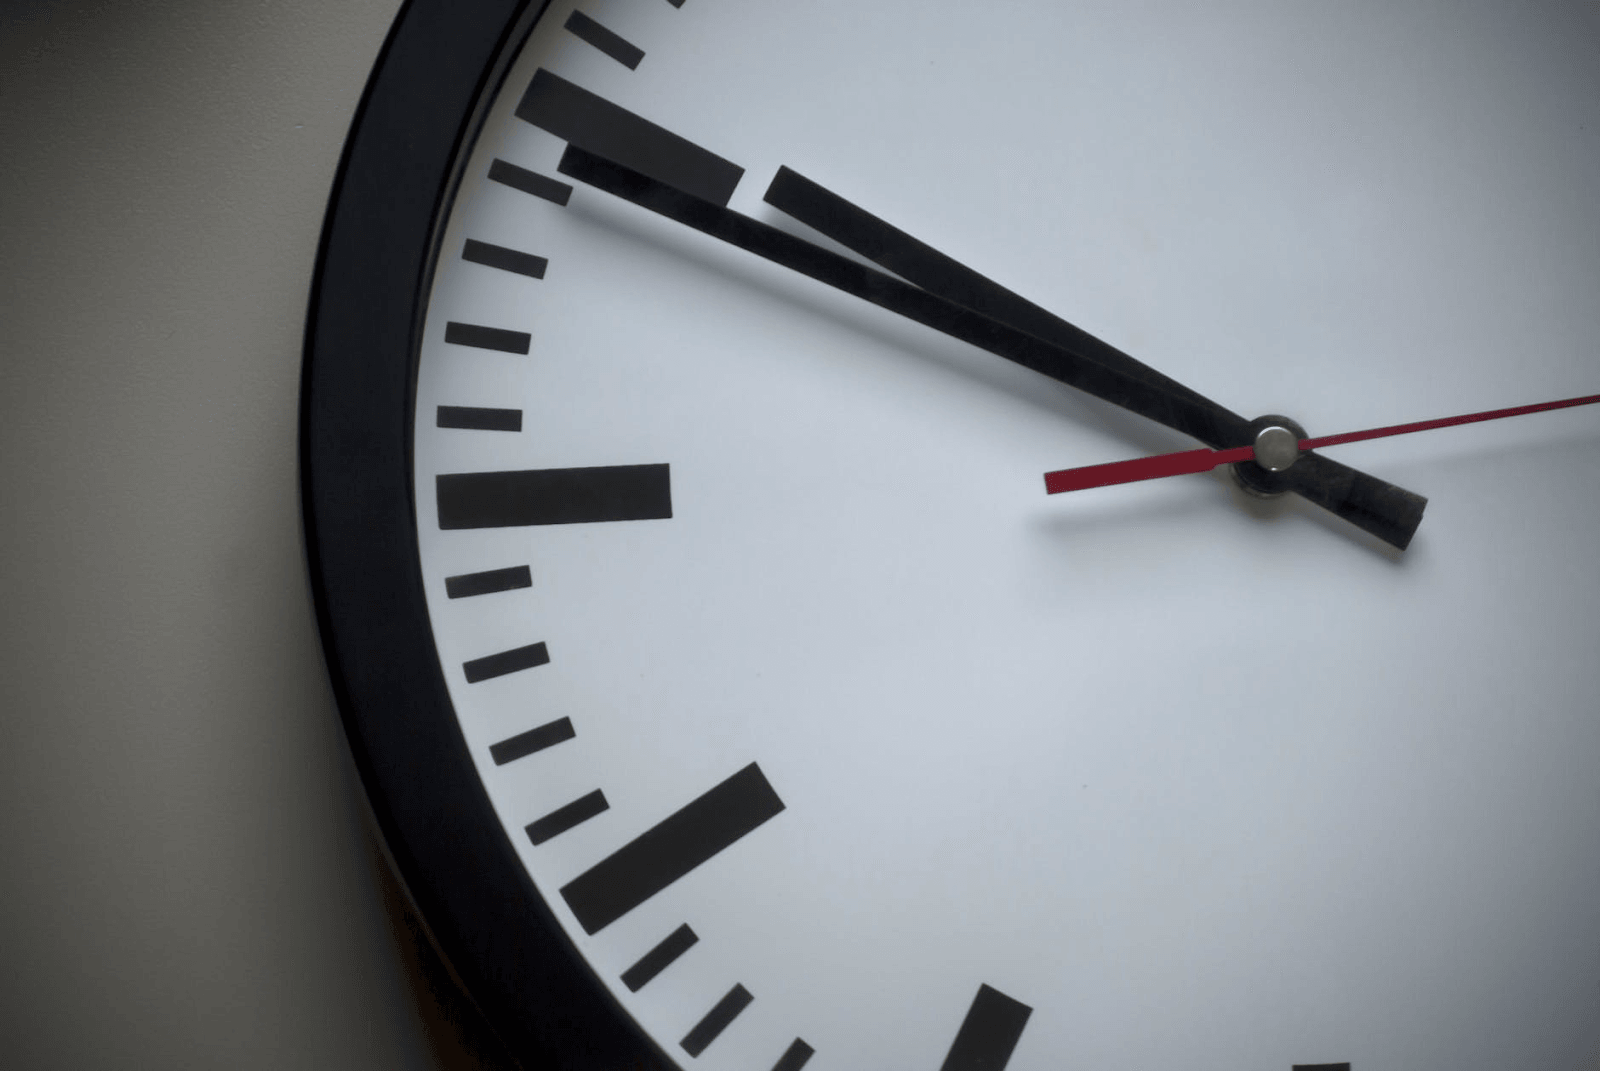 A black and white analog clock with a red seconds hand.